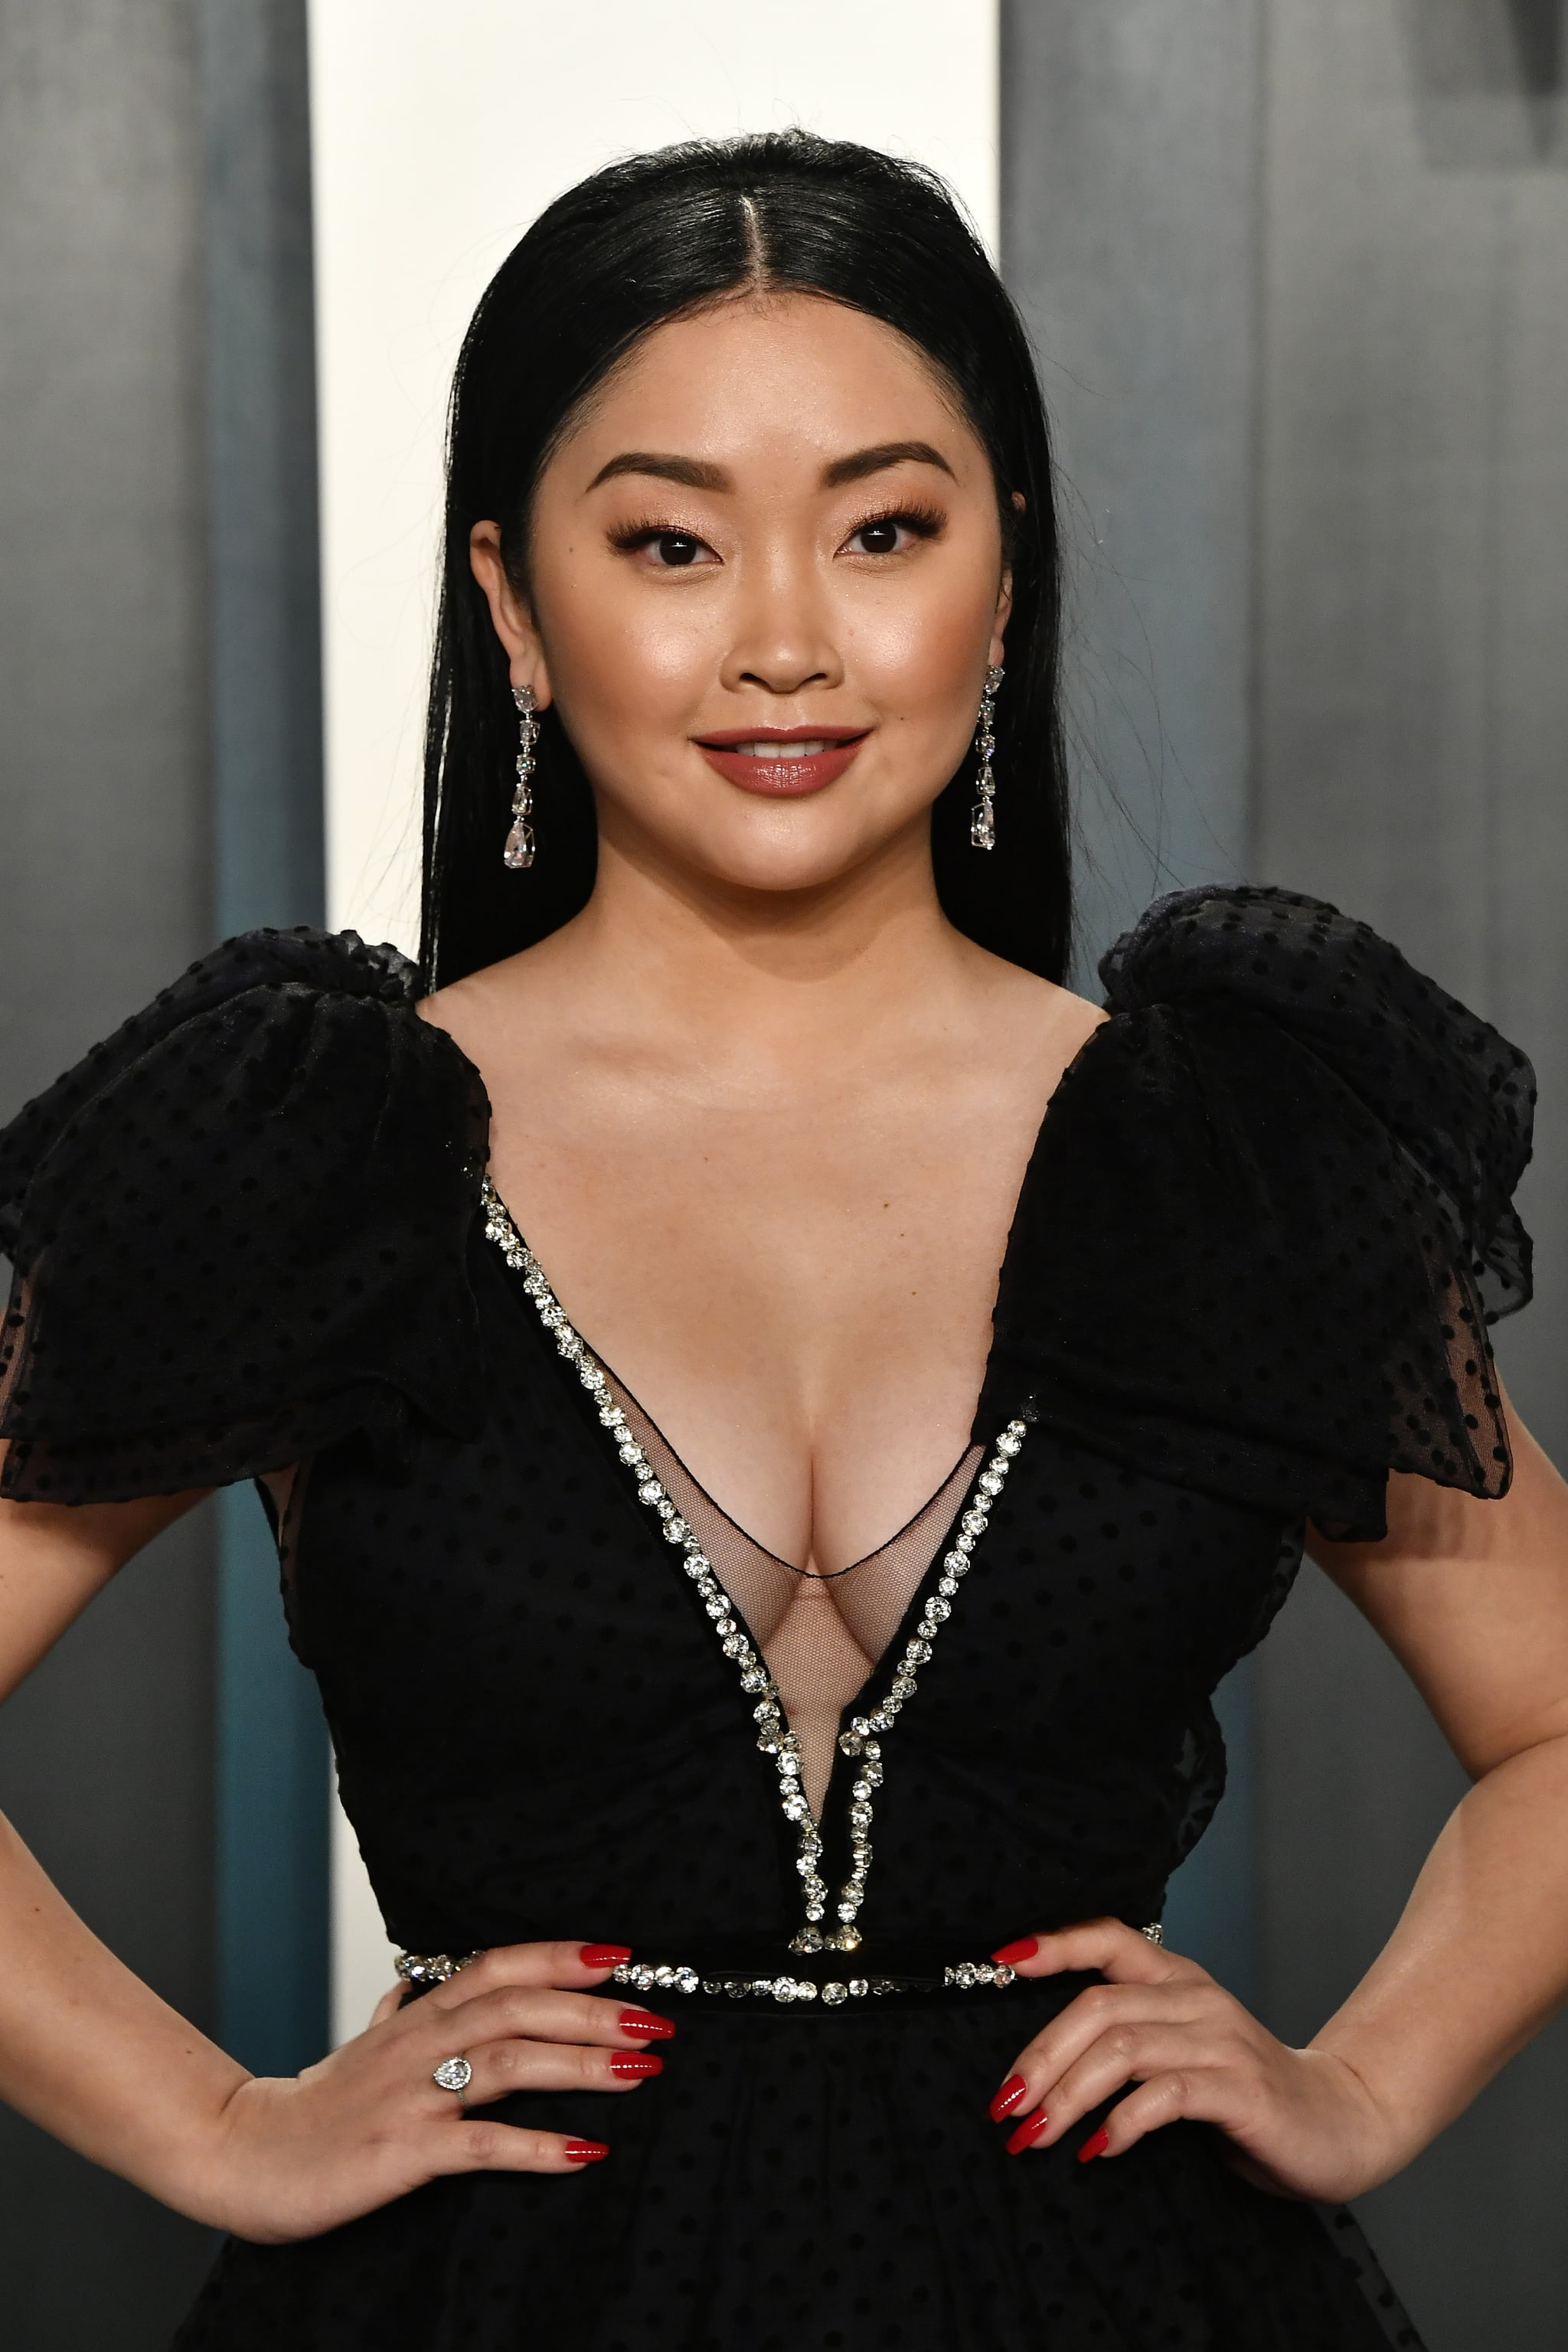 BEVERLY HILLS, CALIFORNIA - FEBRUARY 09: Lana Condor attends the 2020 Vanity Fair Oscar Party hosted by Radhika Jones at Wallis Annenberg Centre for the Performing Arts on February 09, 2020 in Beverly Hills, California. (Photo by Frazer Harrison/Getty Images)